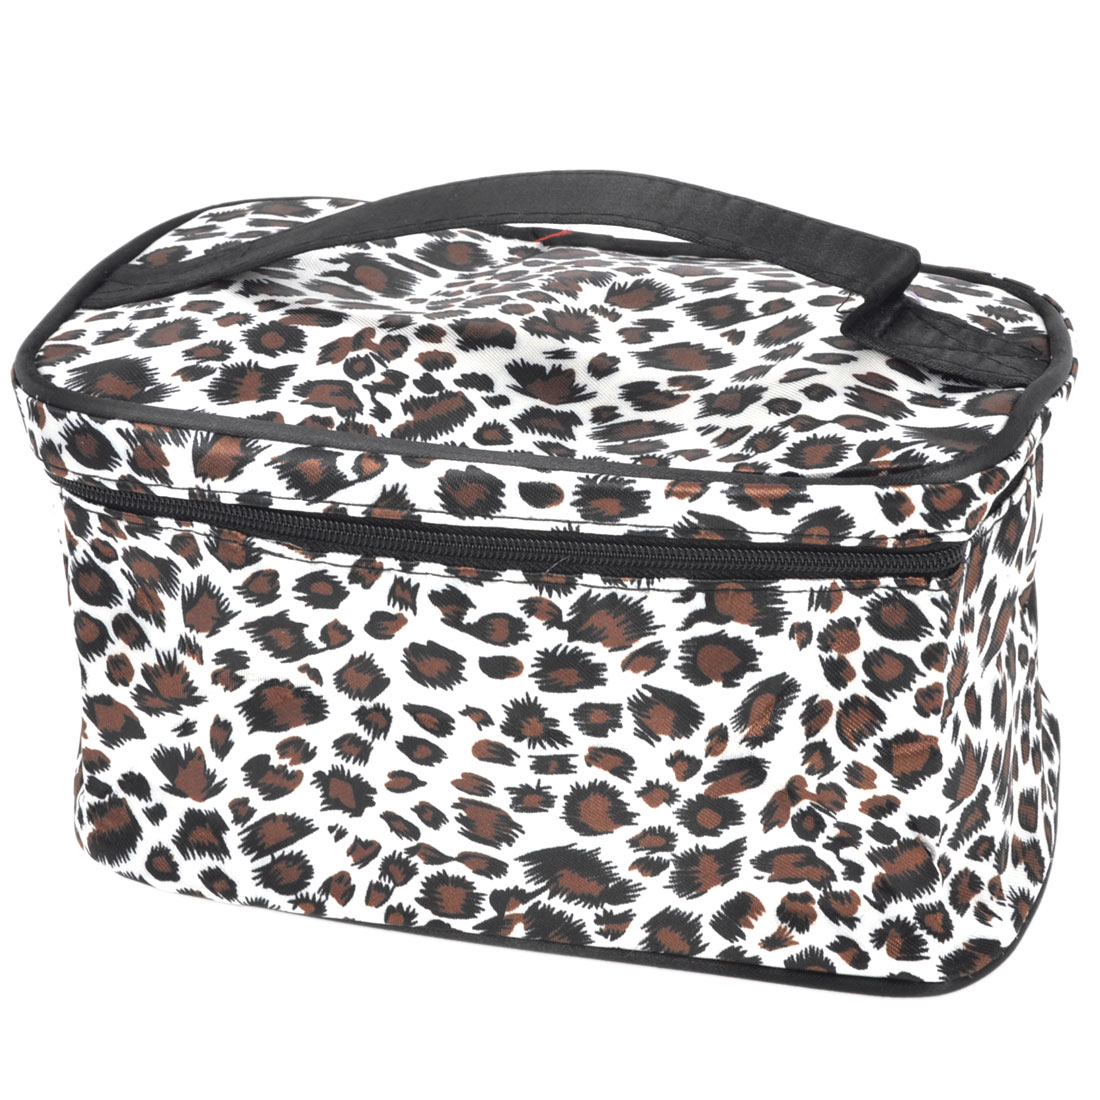 Women Leopard Printed Zipper Clsure Comestic Container White Brown Black